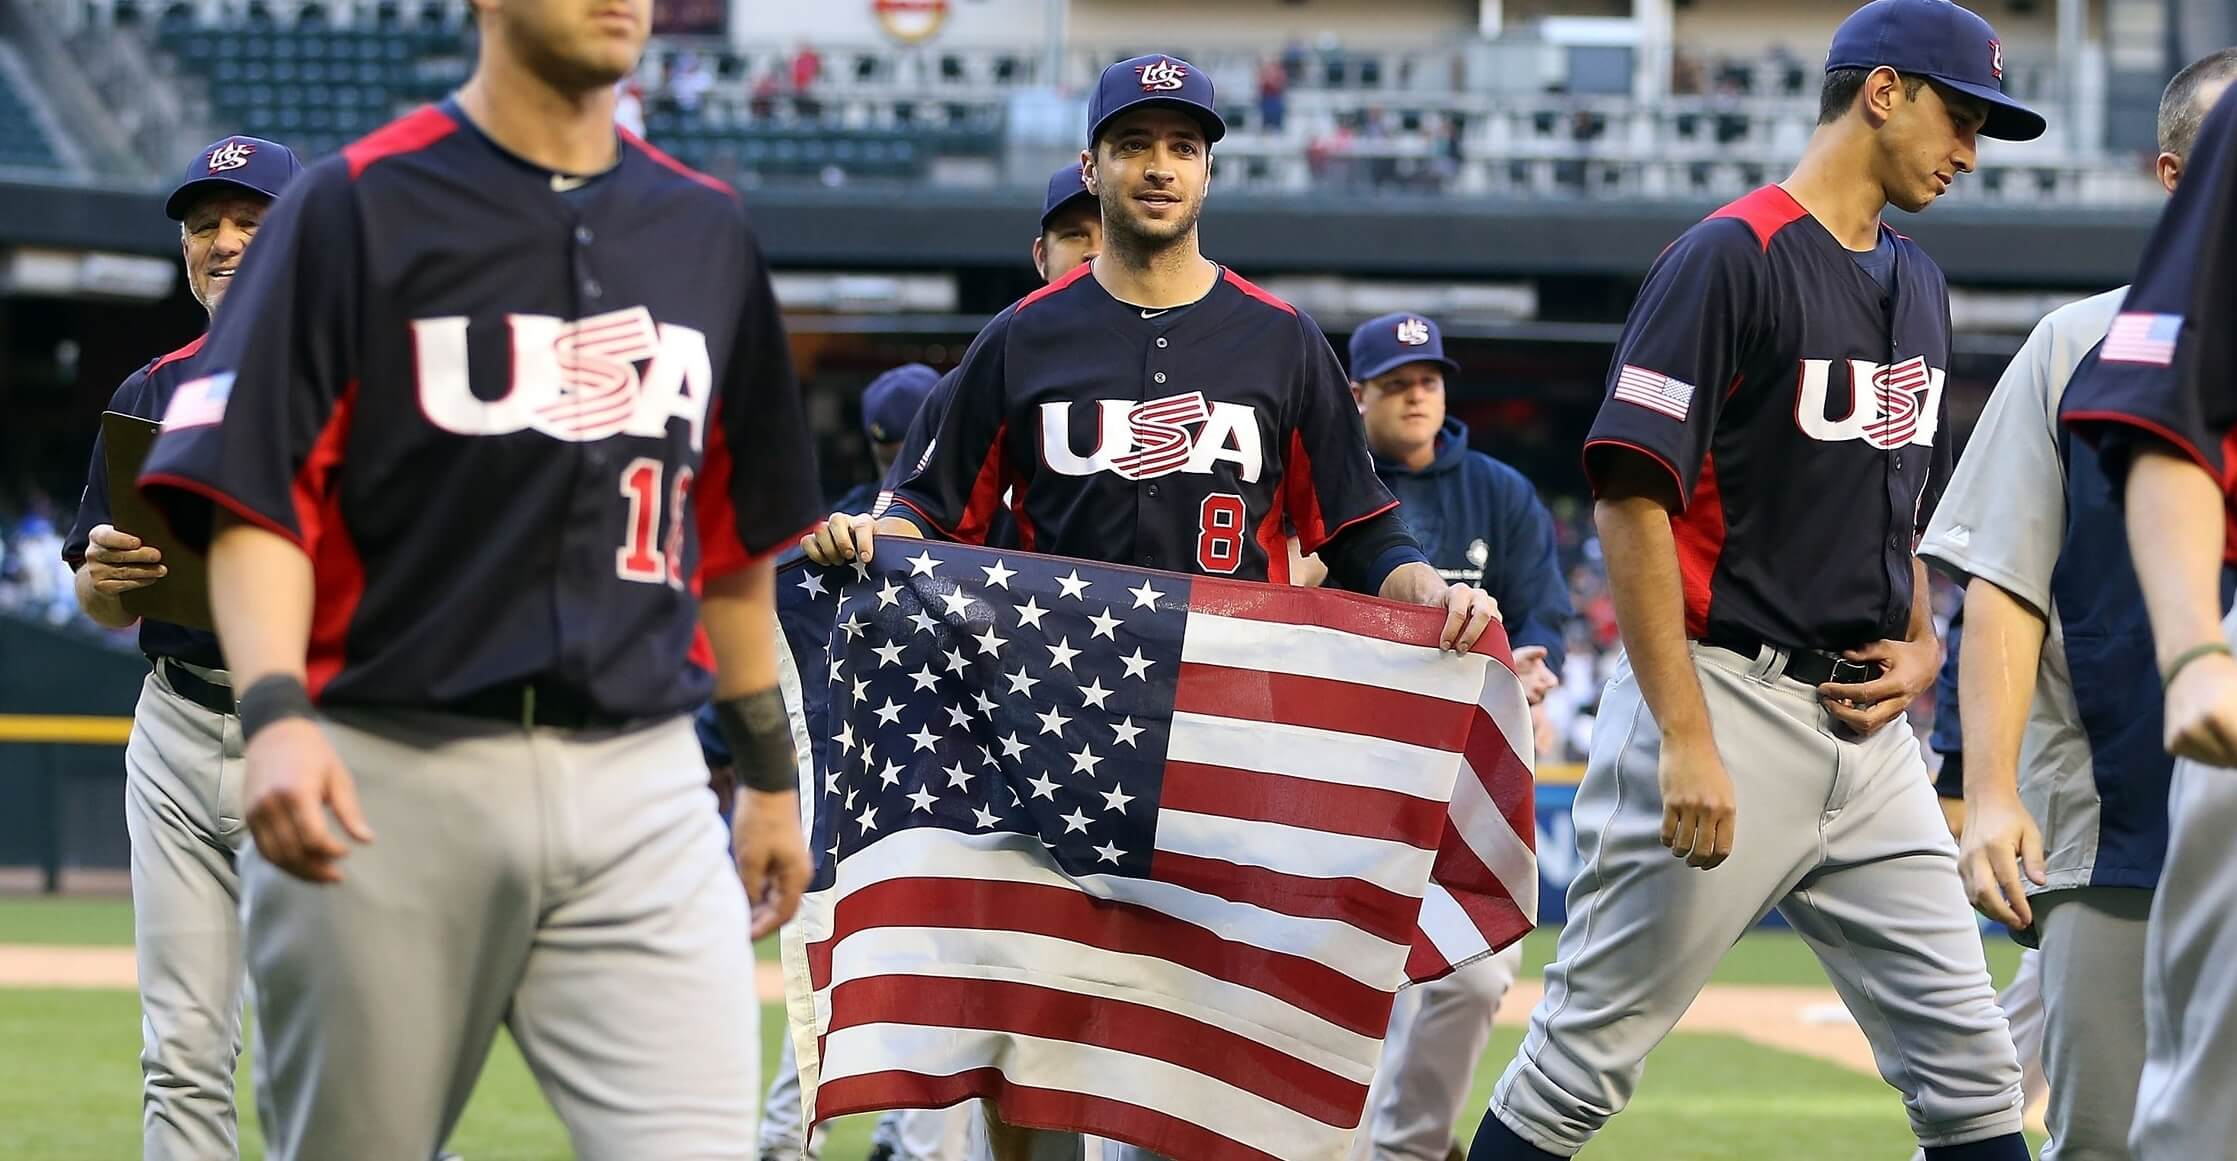 PHOENIX, AZ - MARCH 10:  Ryan Braun #9 of USA carries a flag in celebration after defeating Canada 9-4 in the World Baseball Classic First Round Group D game at Chase Field on March 10, 2013 in Phoenix, Arizona.  (Photo by Christian Petersen/Getty Images)